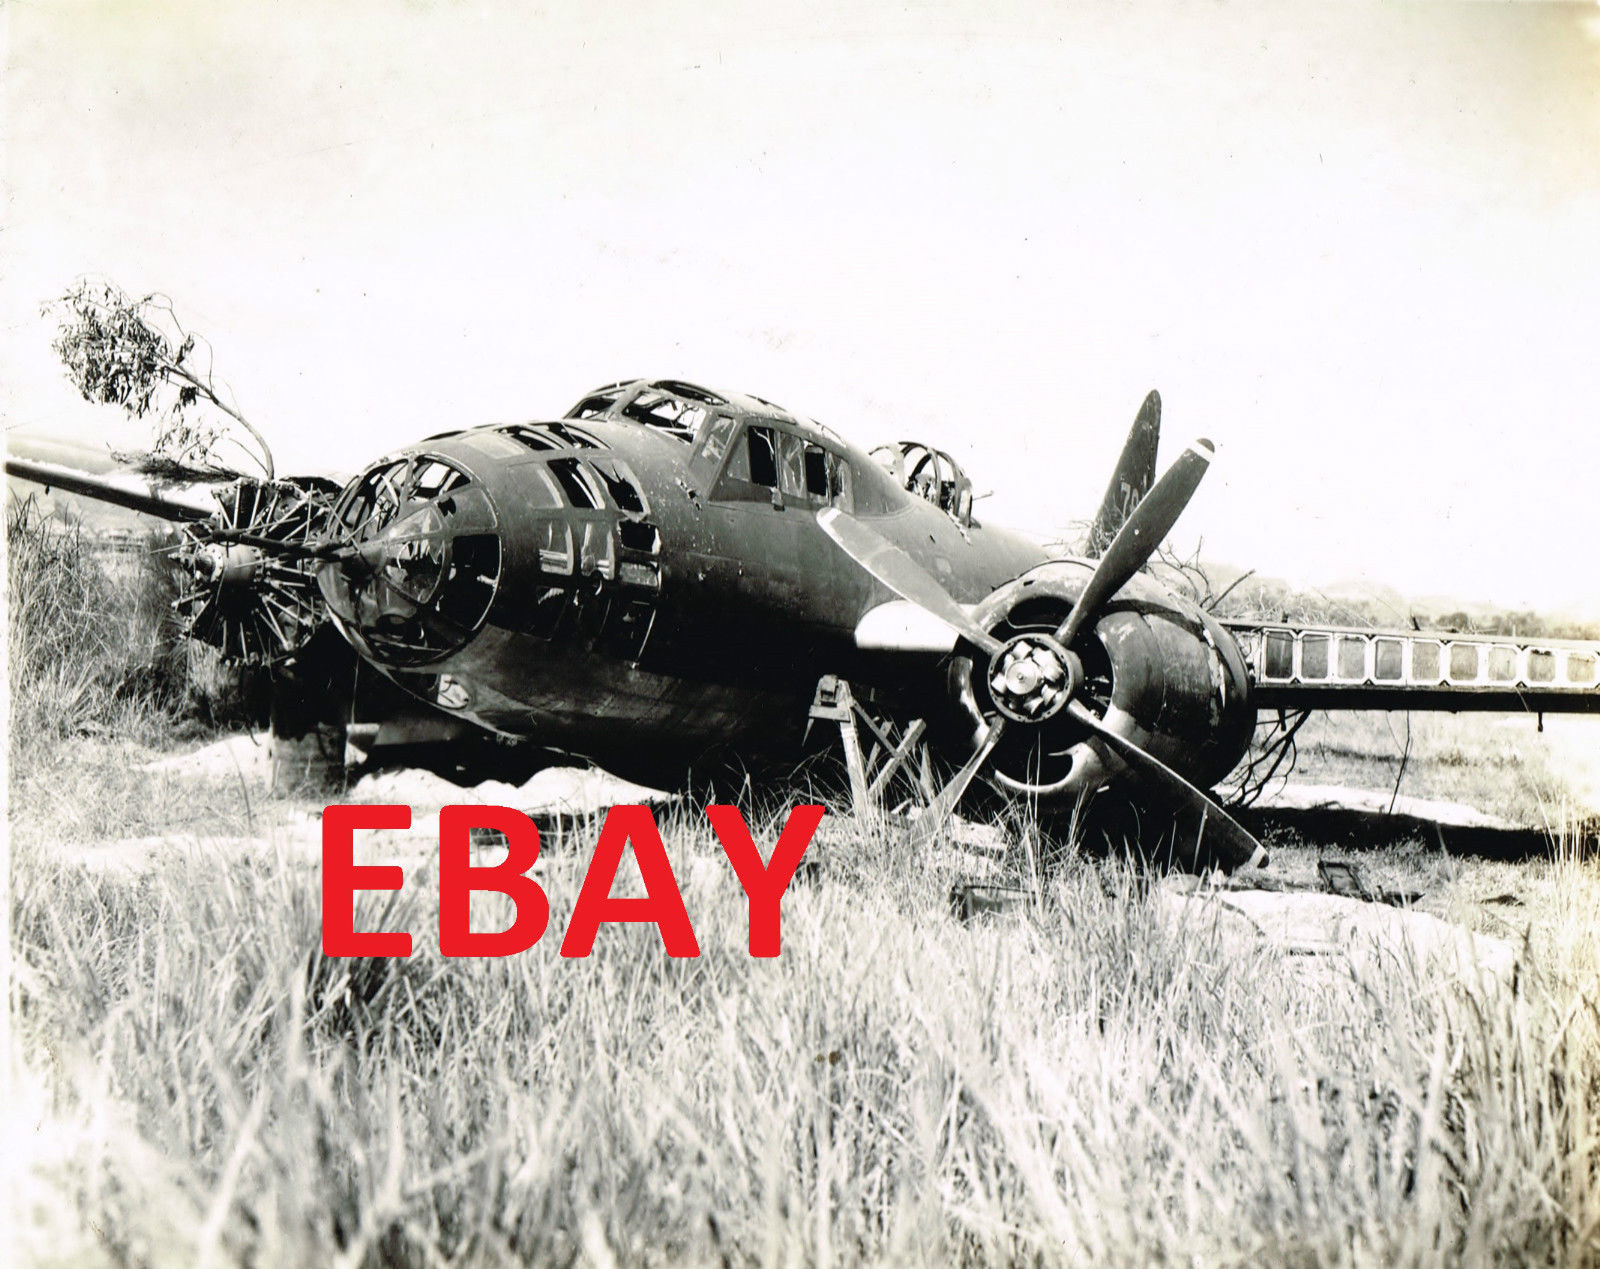 CRASHED JAPANESE BOMBER AIRCRAFT.jpg